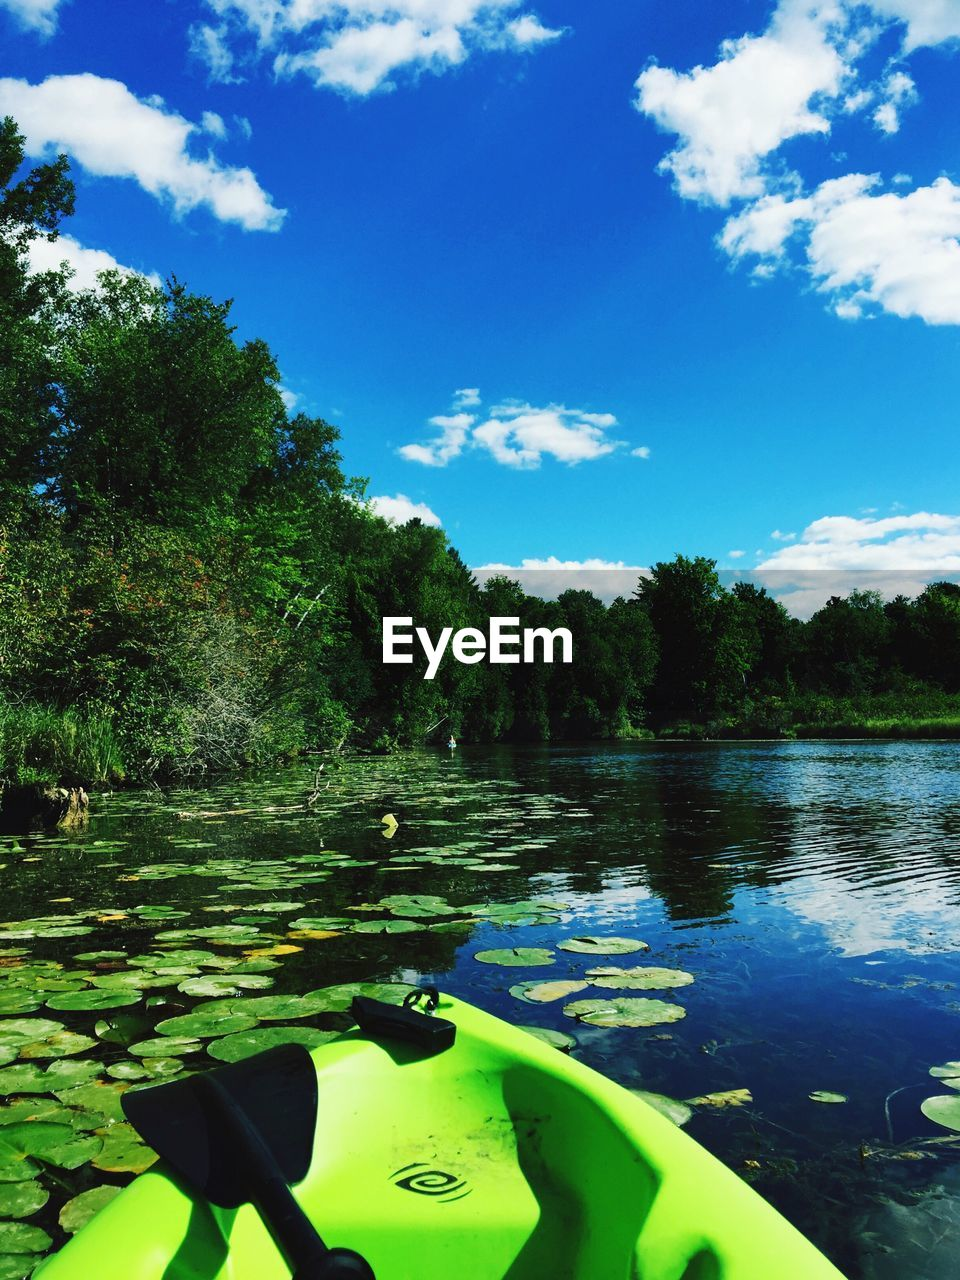 water, tranquility, floating on water, nature, beauty in nature, lake, sky, tree, outdoors, day, tranquil scene, scenics, no people, cloud - sky, lily pad, growth